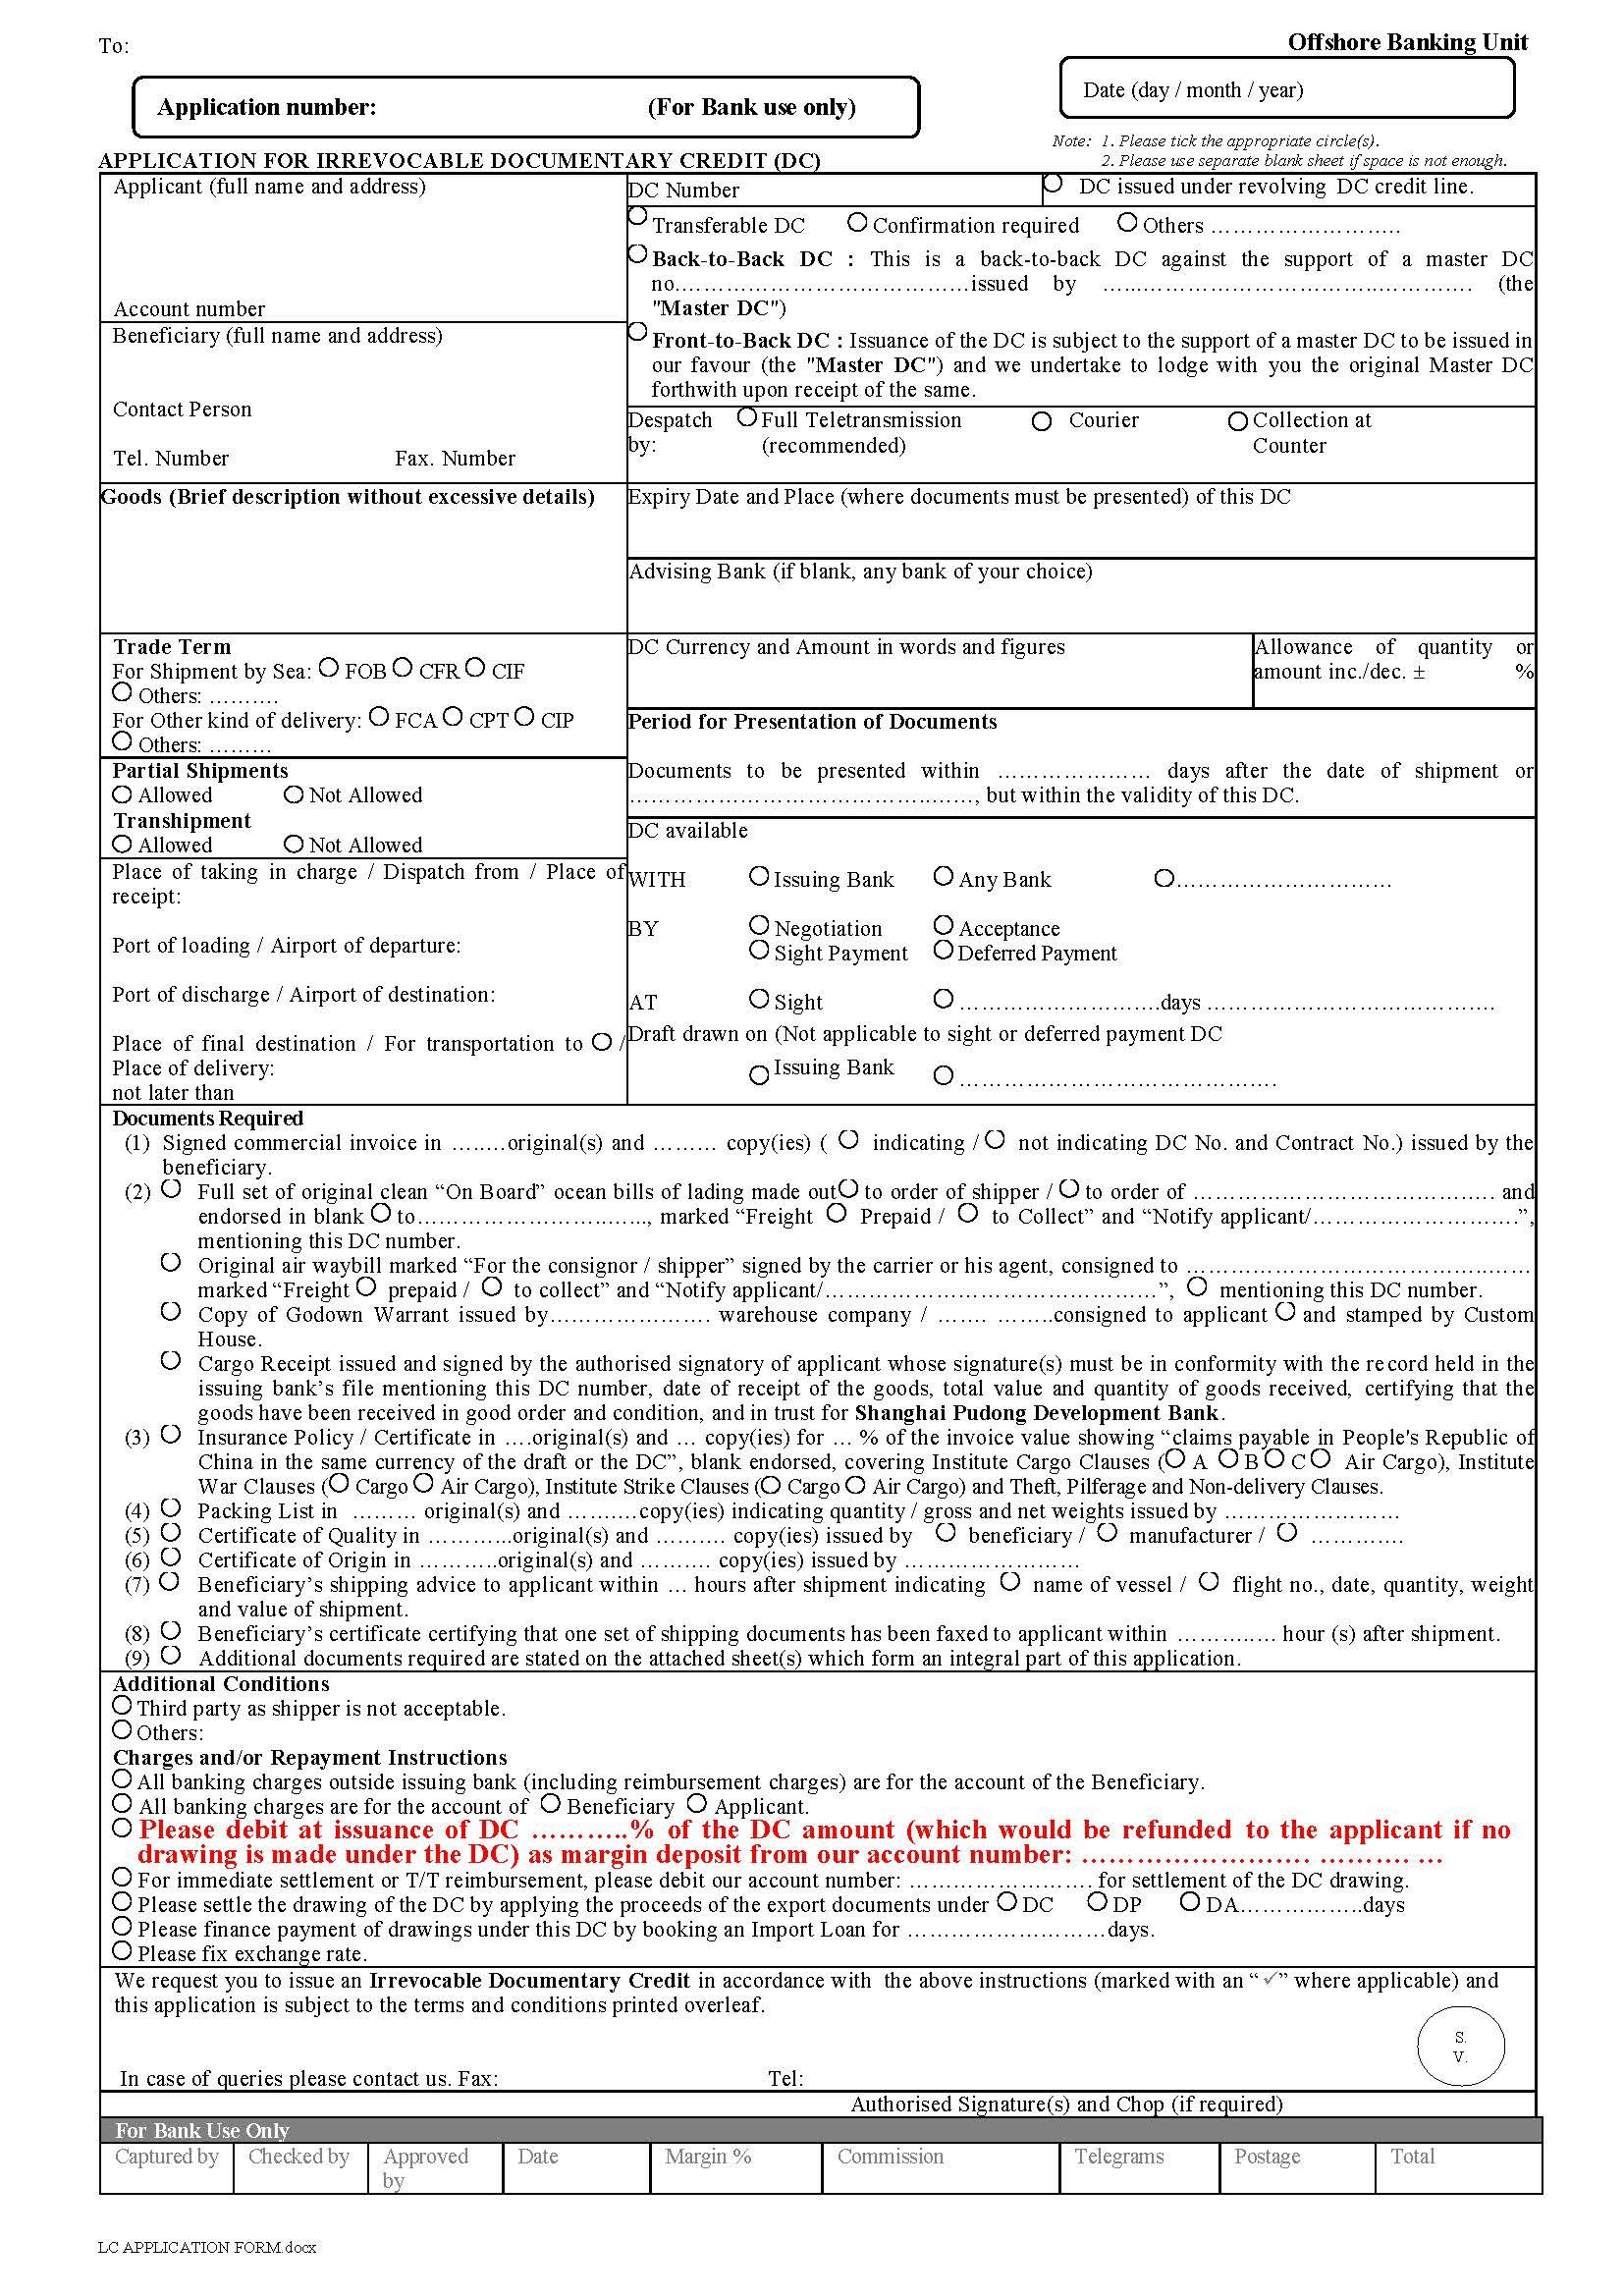 letter of credit application form main image